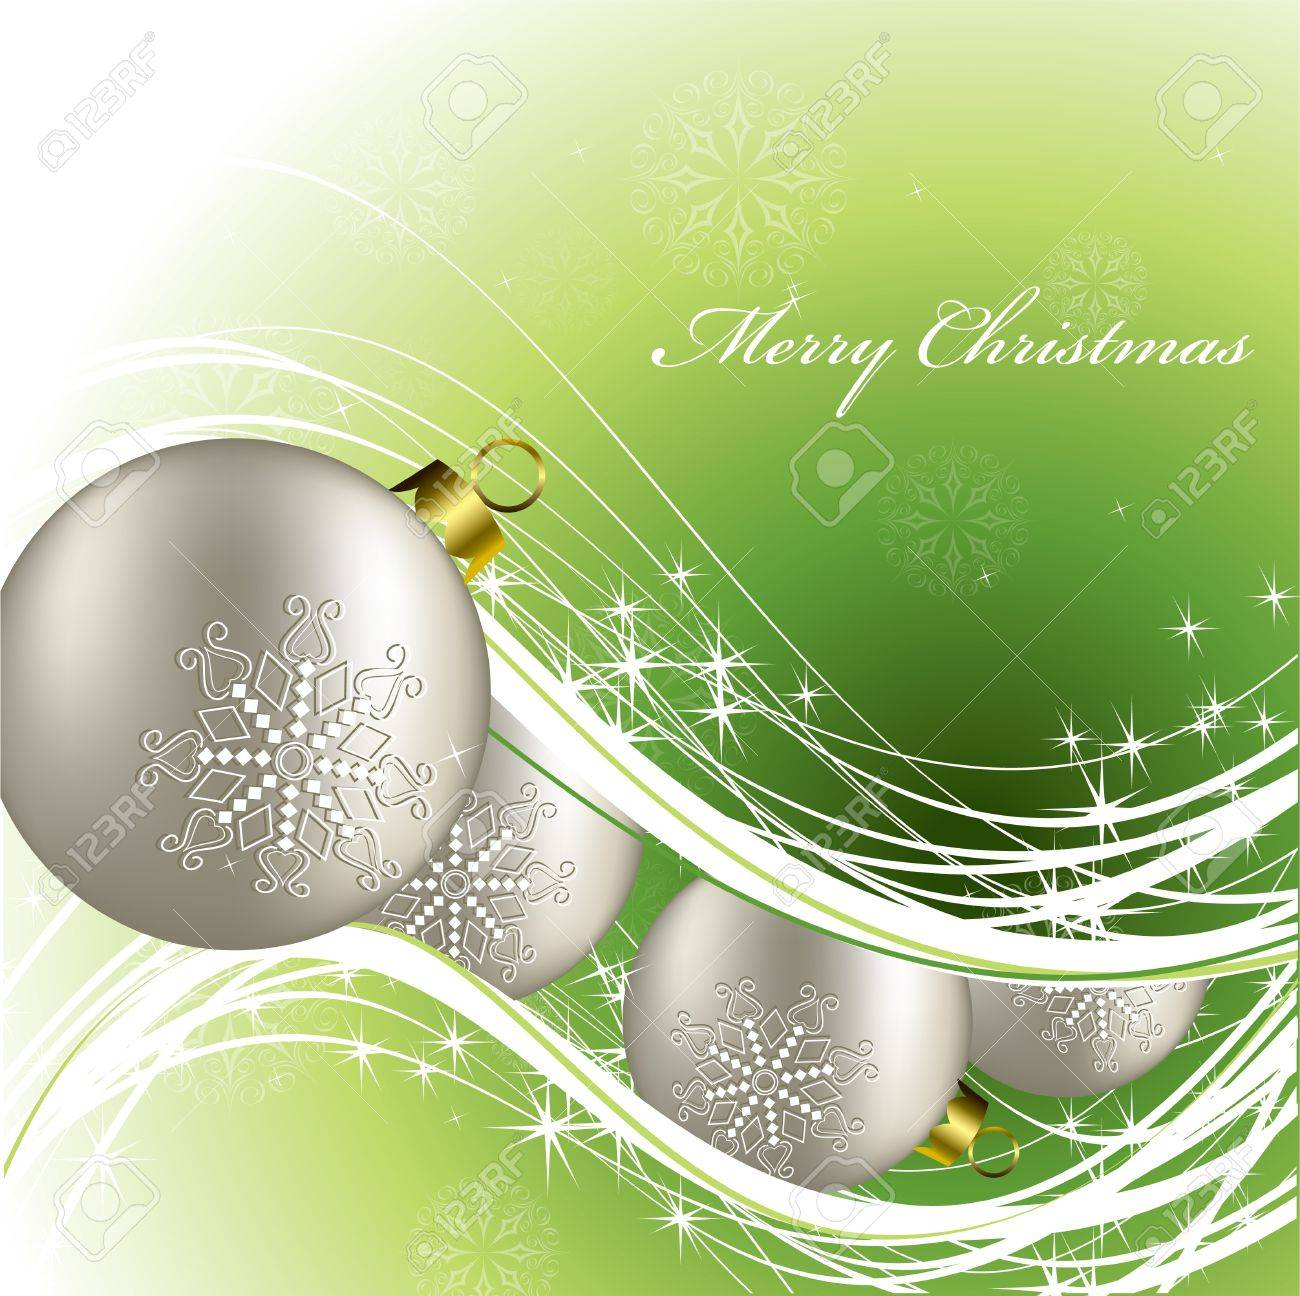 Christmas Background Stock Vector - 15013832